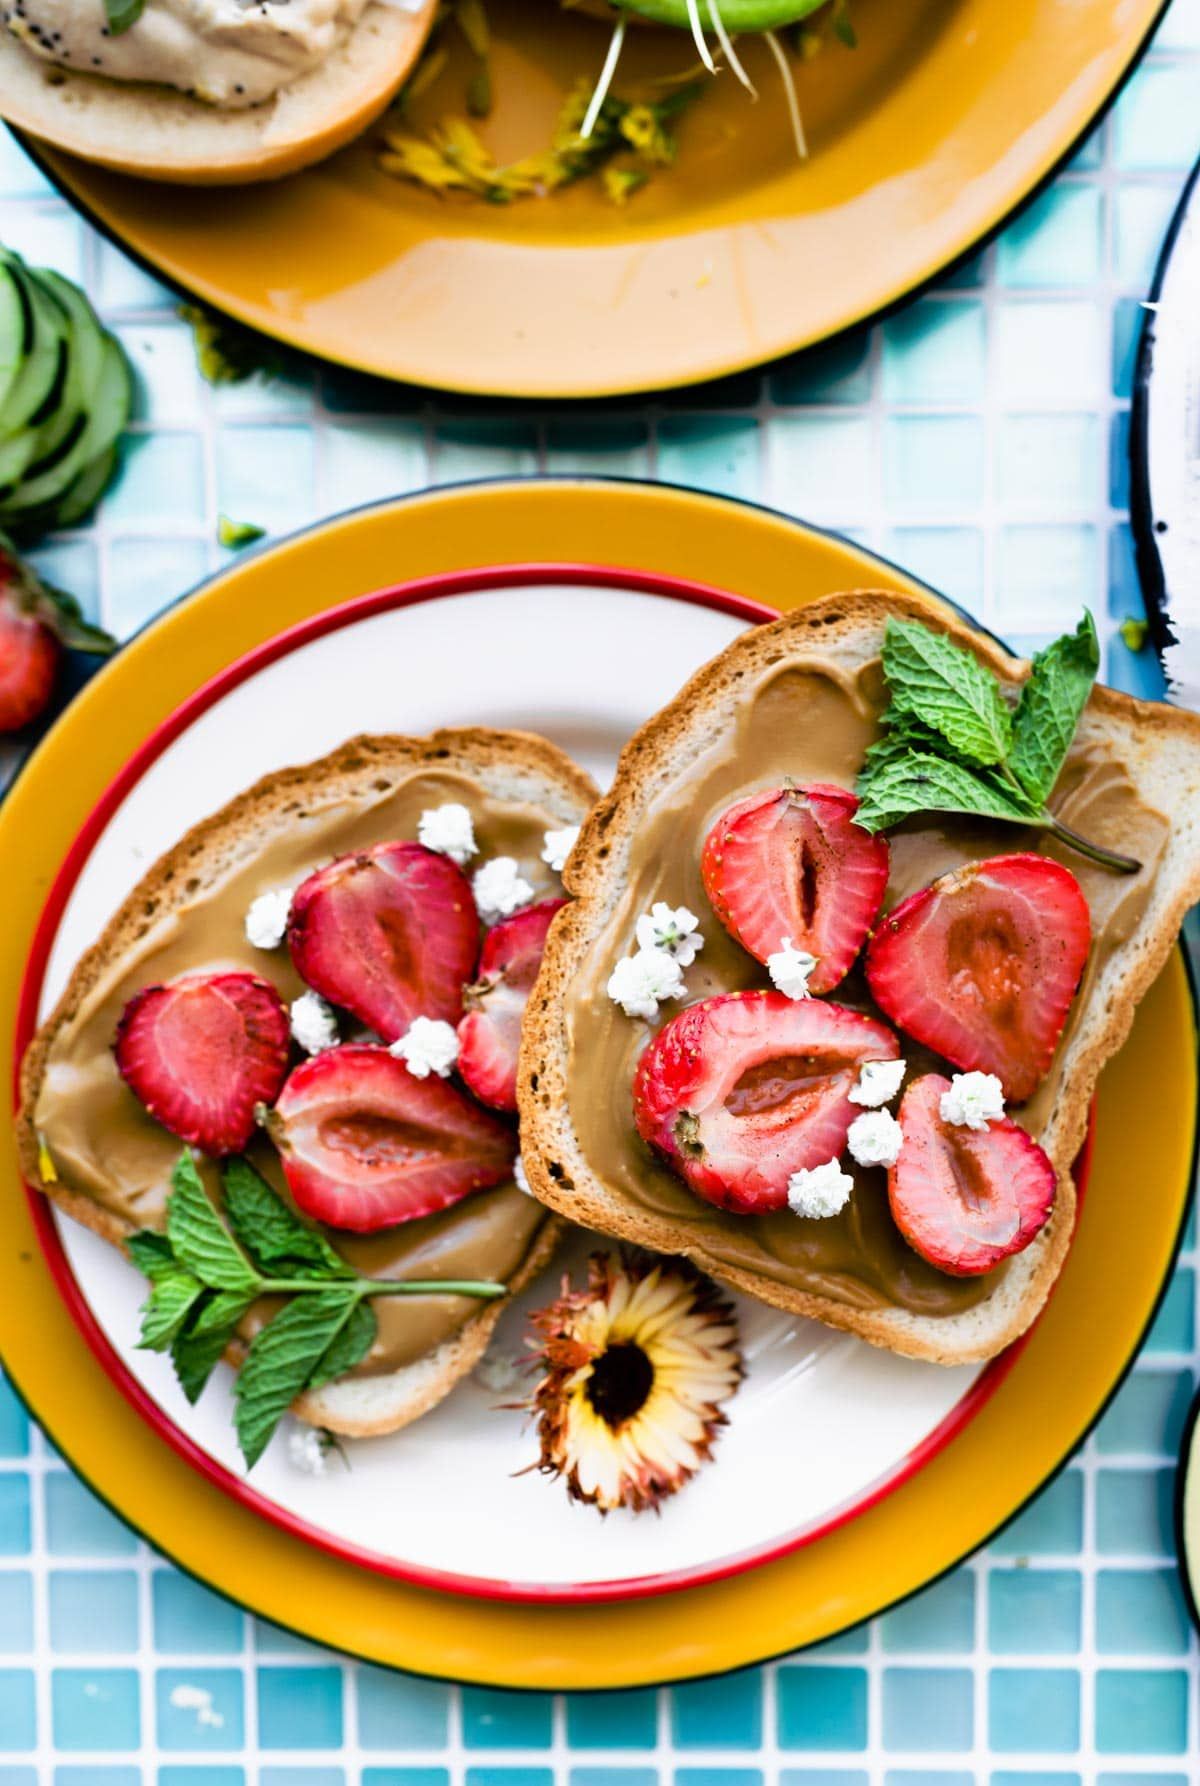 almond butter and strawberry slices on vegan toast